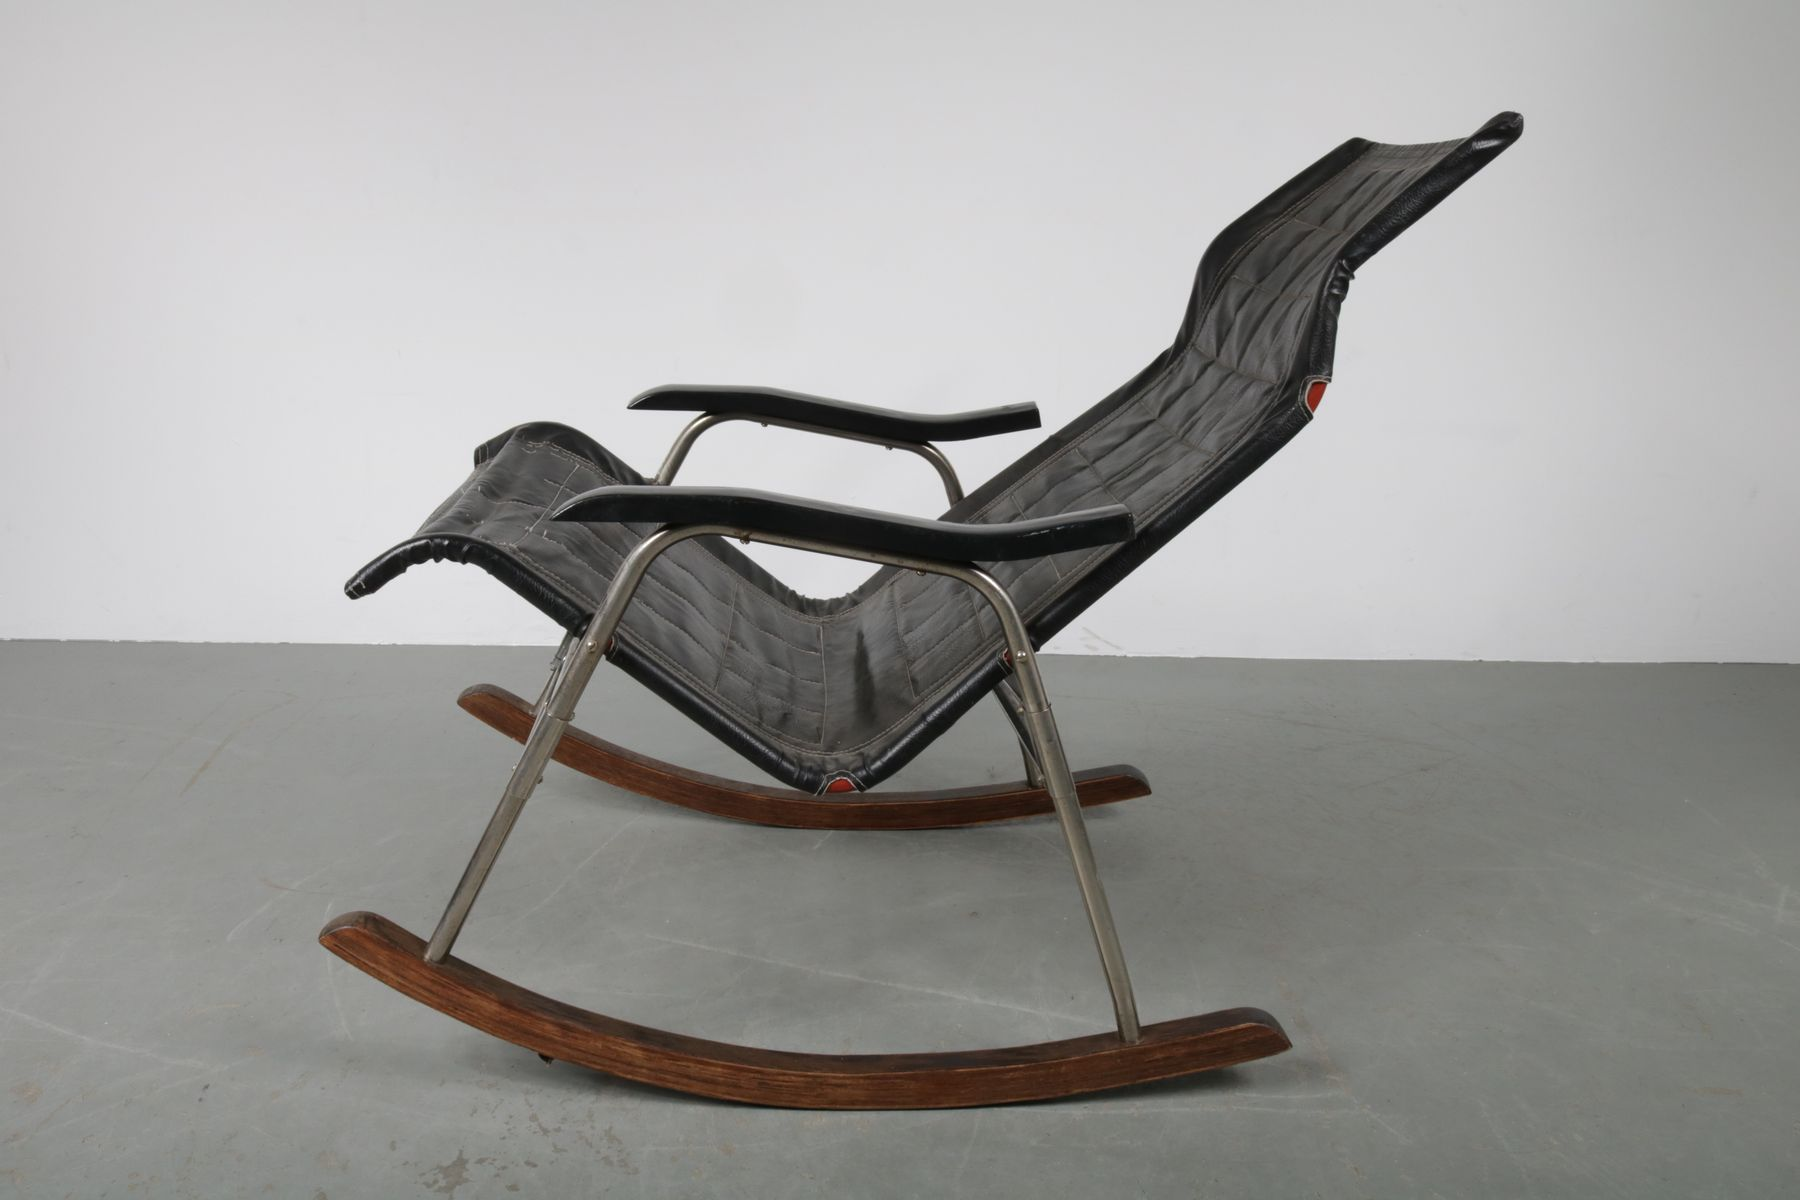 Japanese Black Leather Rocking Chair by Takeshi Nii 1950s for